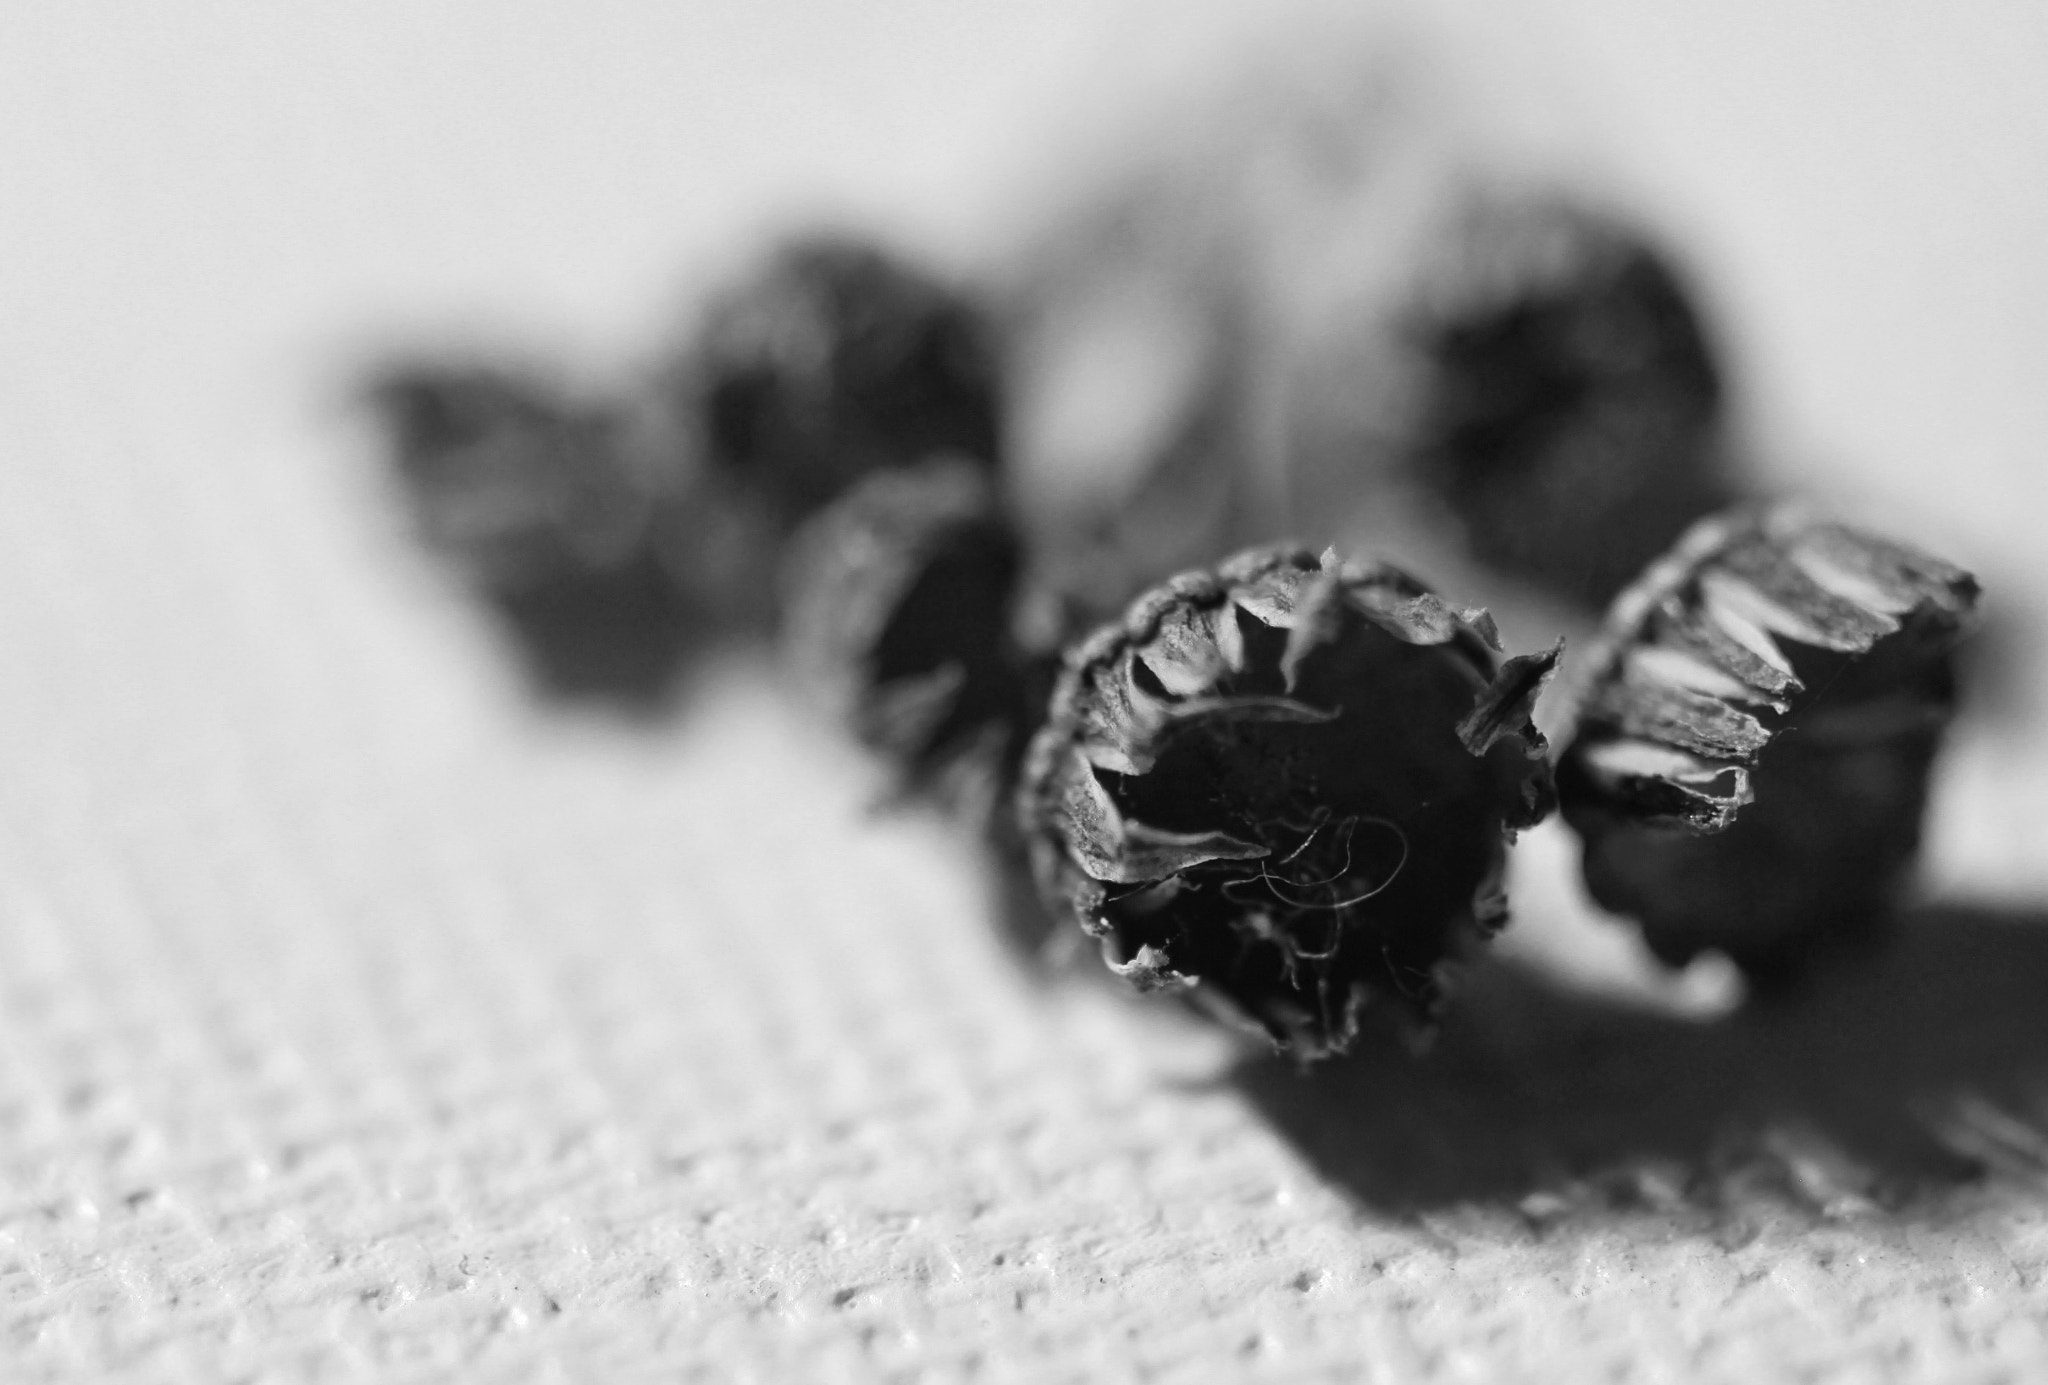 Photograph Peppercorns Too? by Silvia Poldaru on 500px